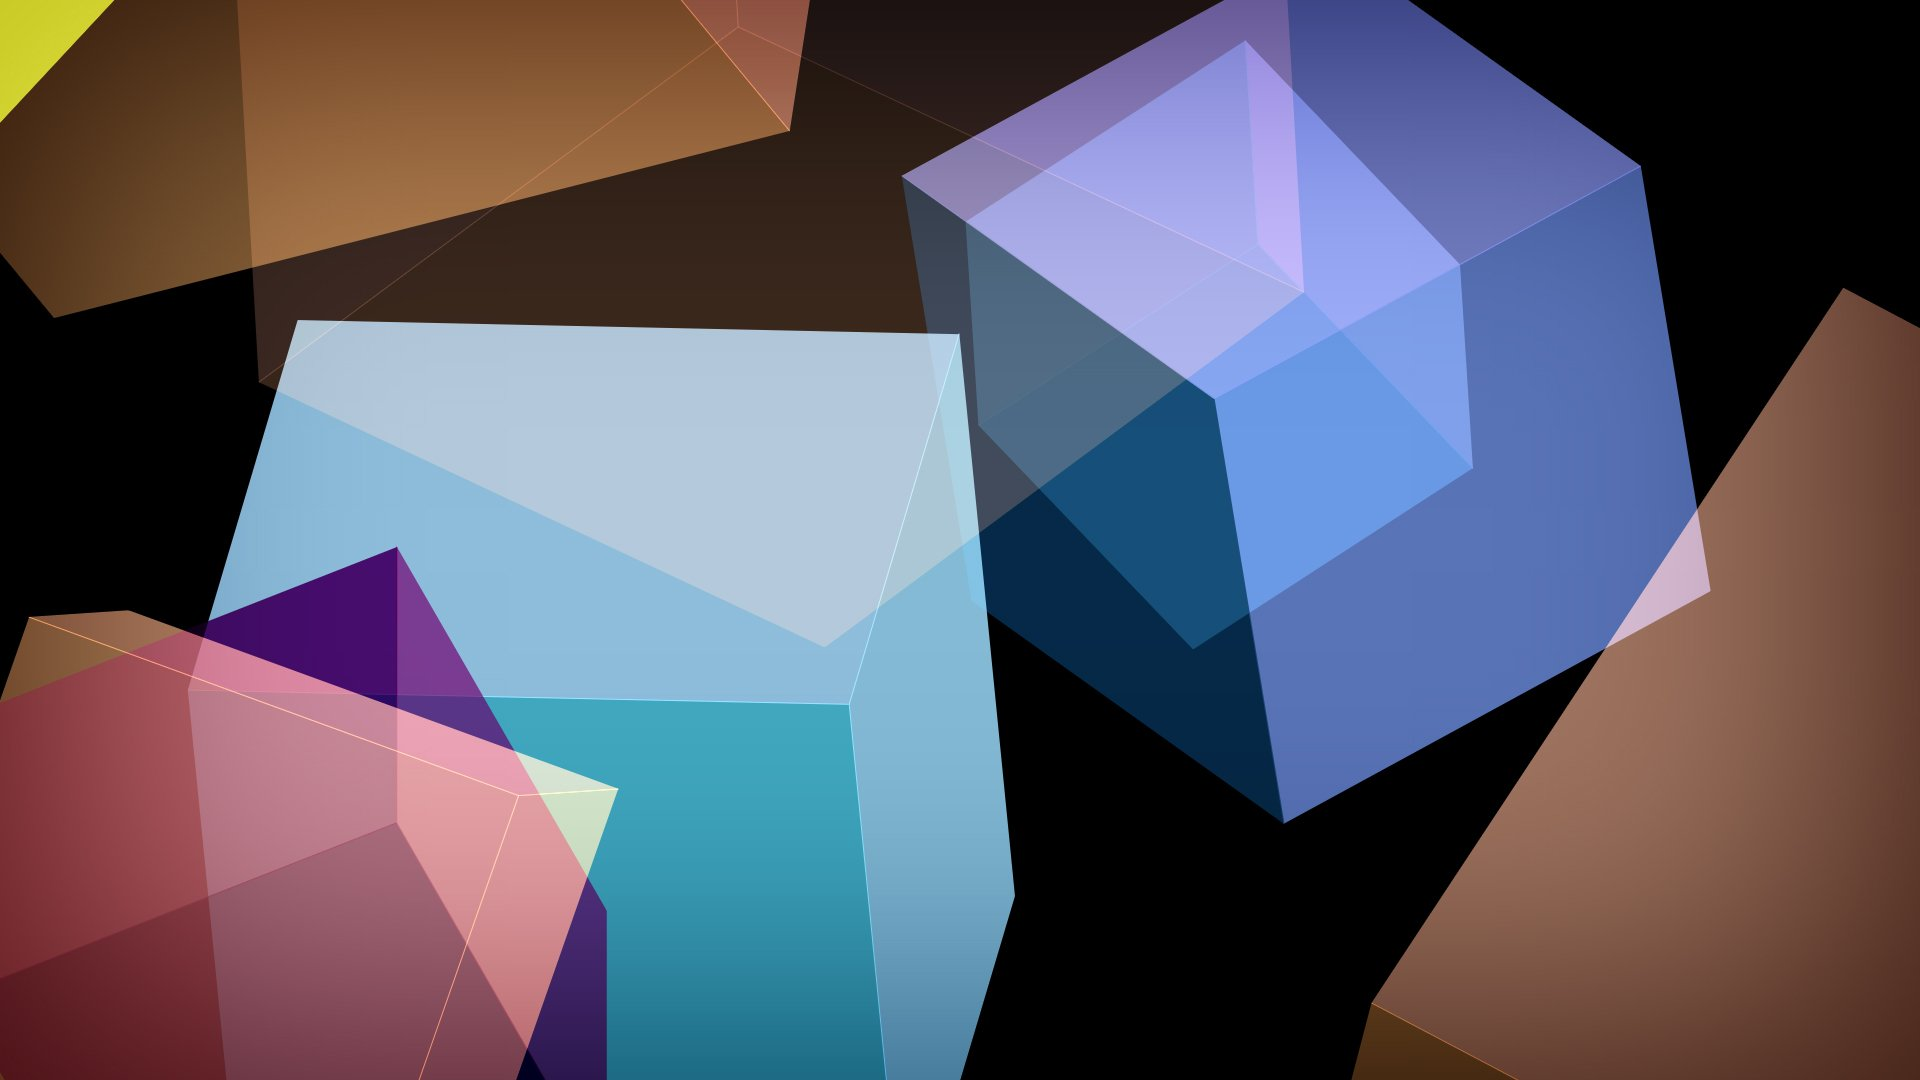 Another Cube Wallpaper Page 15 Images 1920x1080